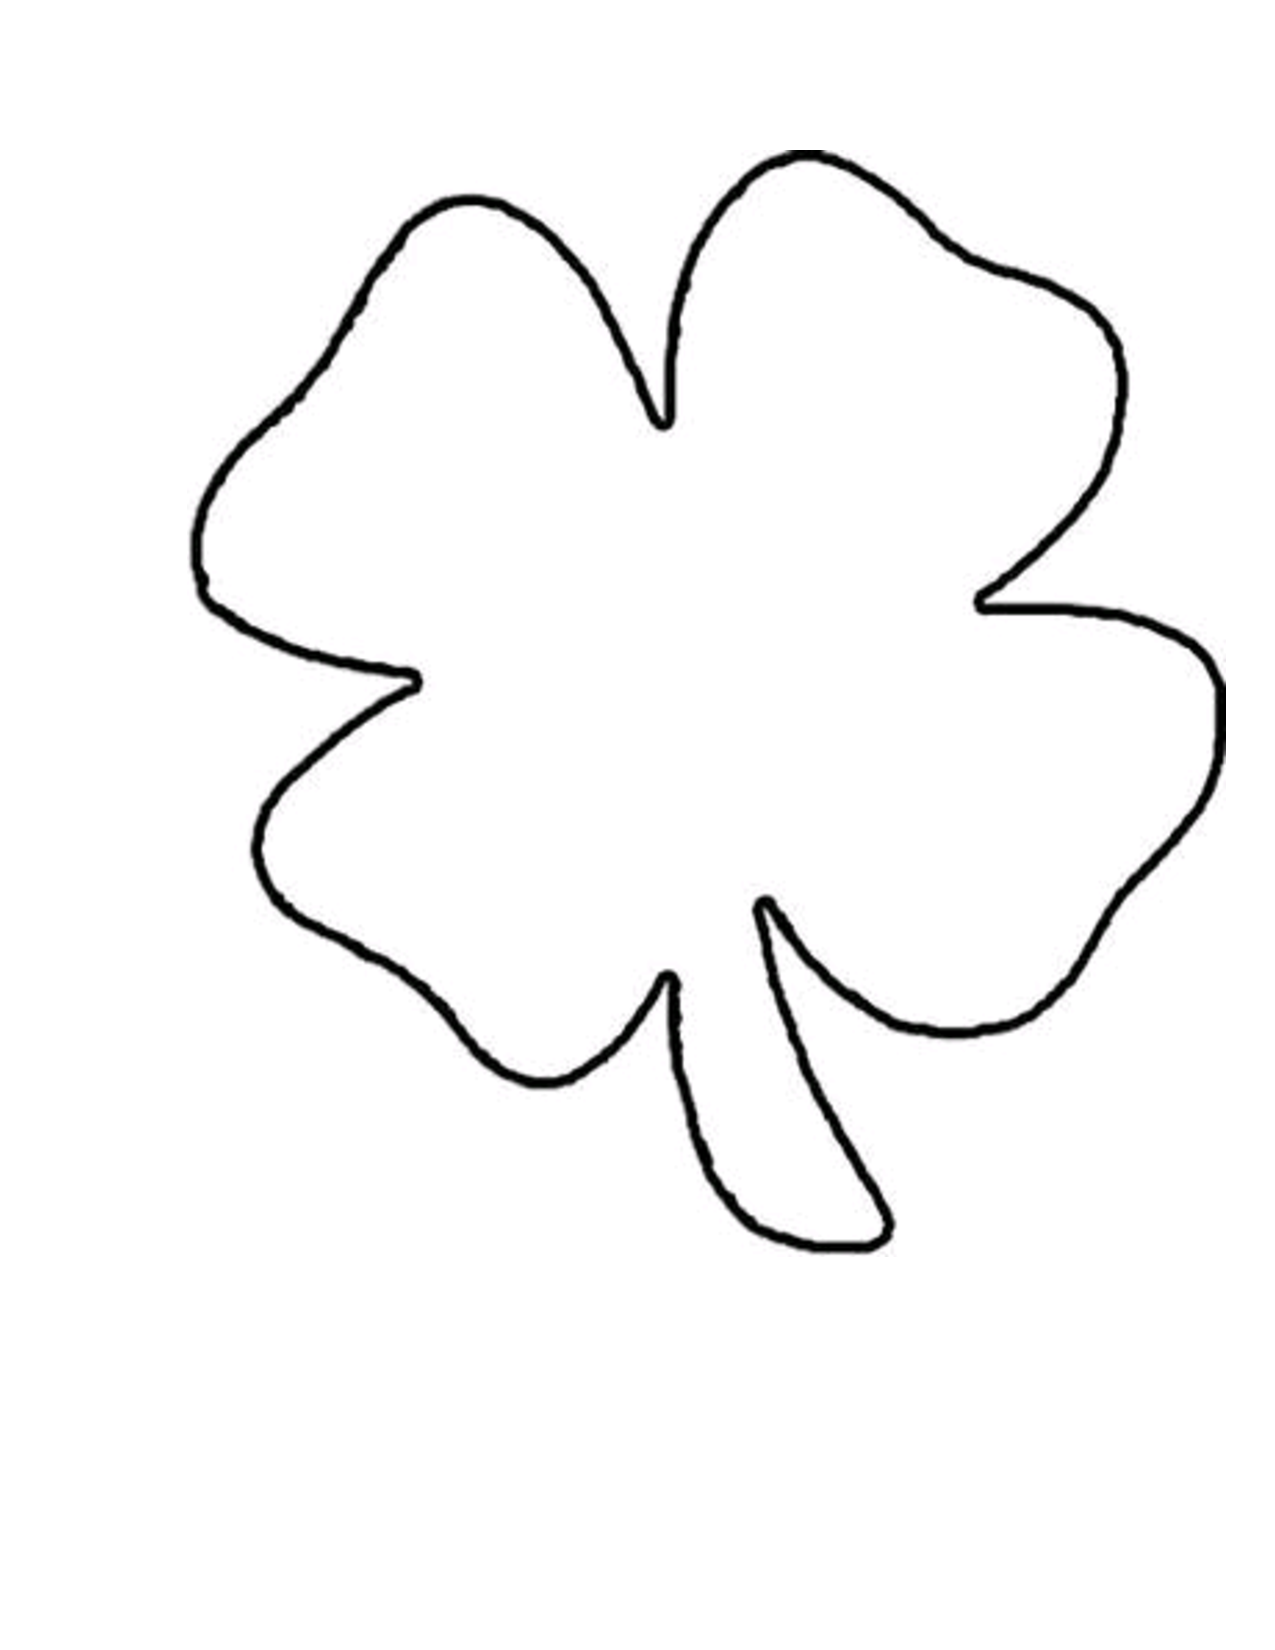 image relating to Shamrock Template Printable referred to as 4+Clover+Leaf+Template+Shamrock+Routine st. patricks